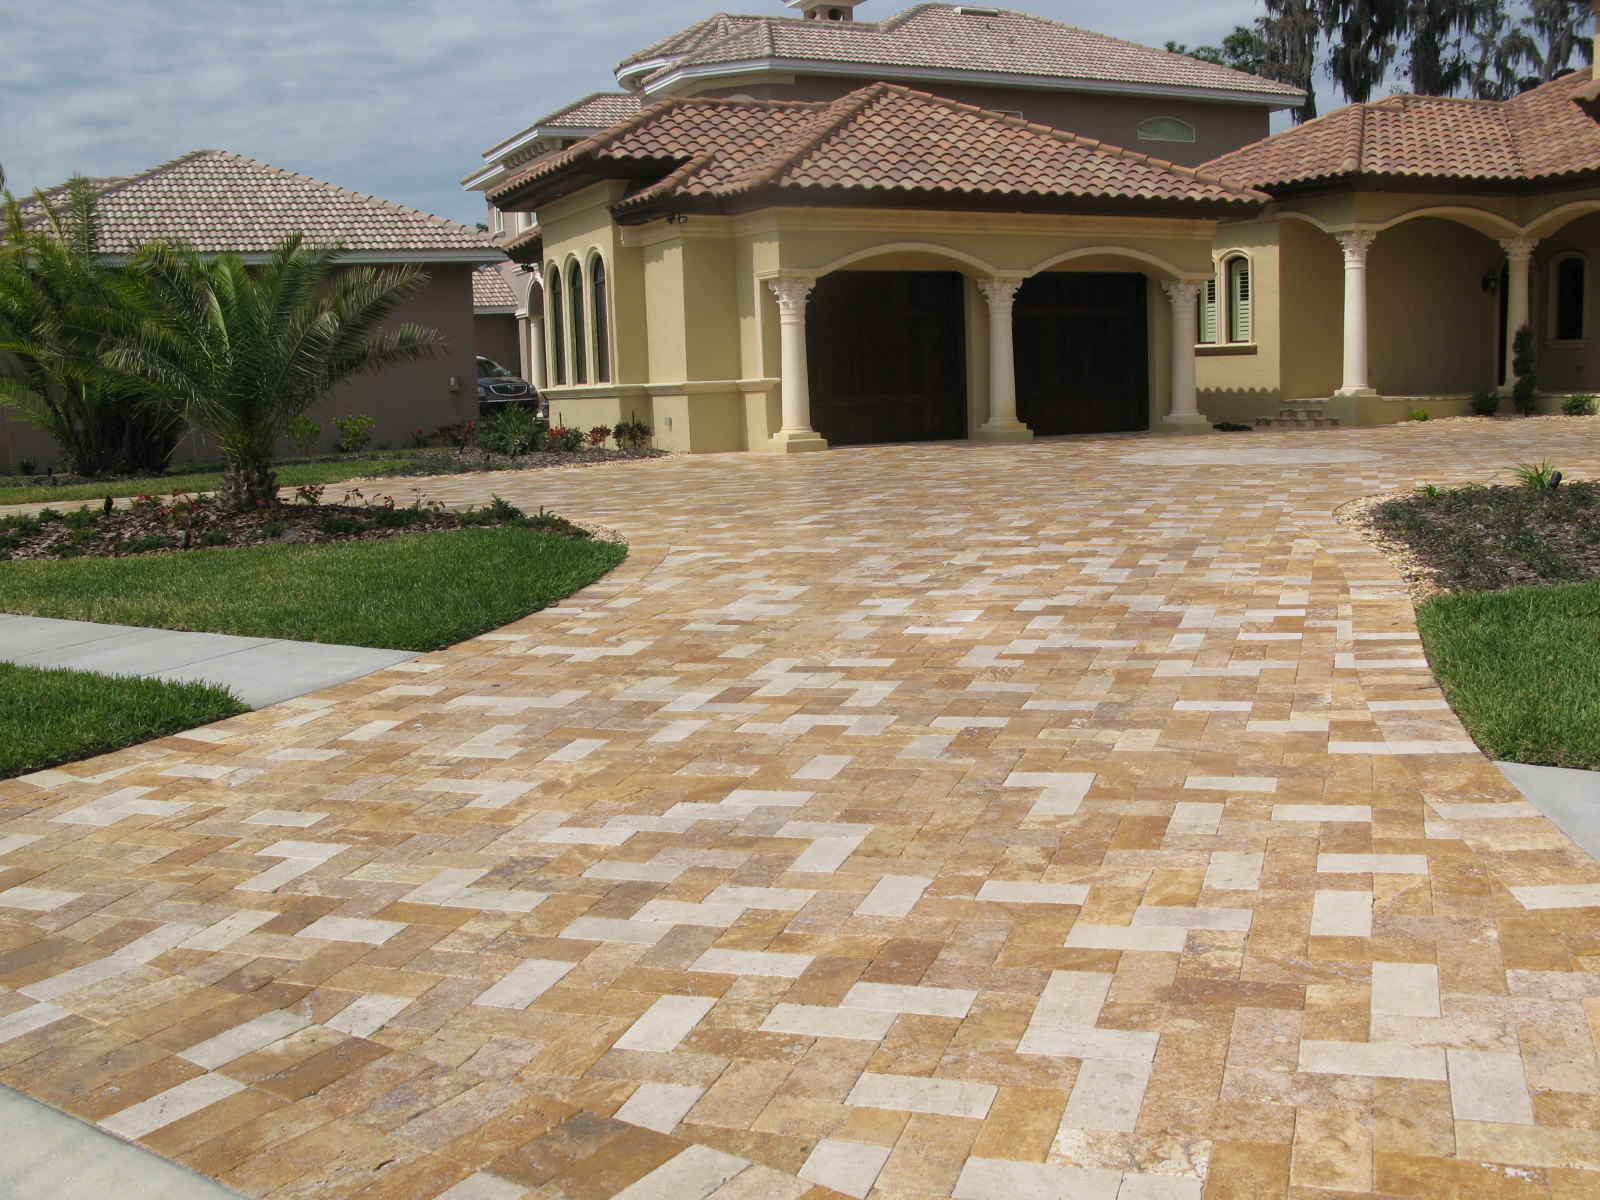 stamped concrete patio design ideas everything you need to know - Stamped Concrete Design Ideas